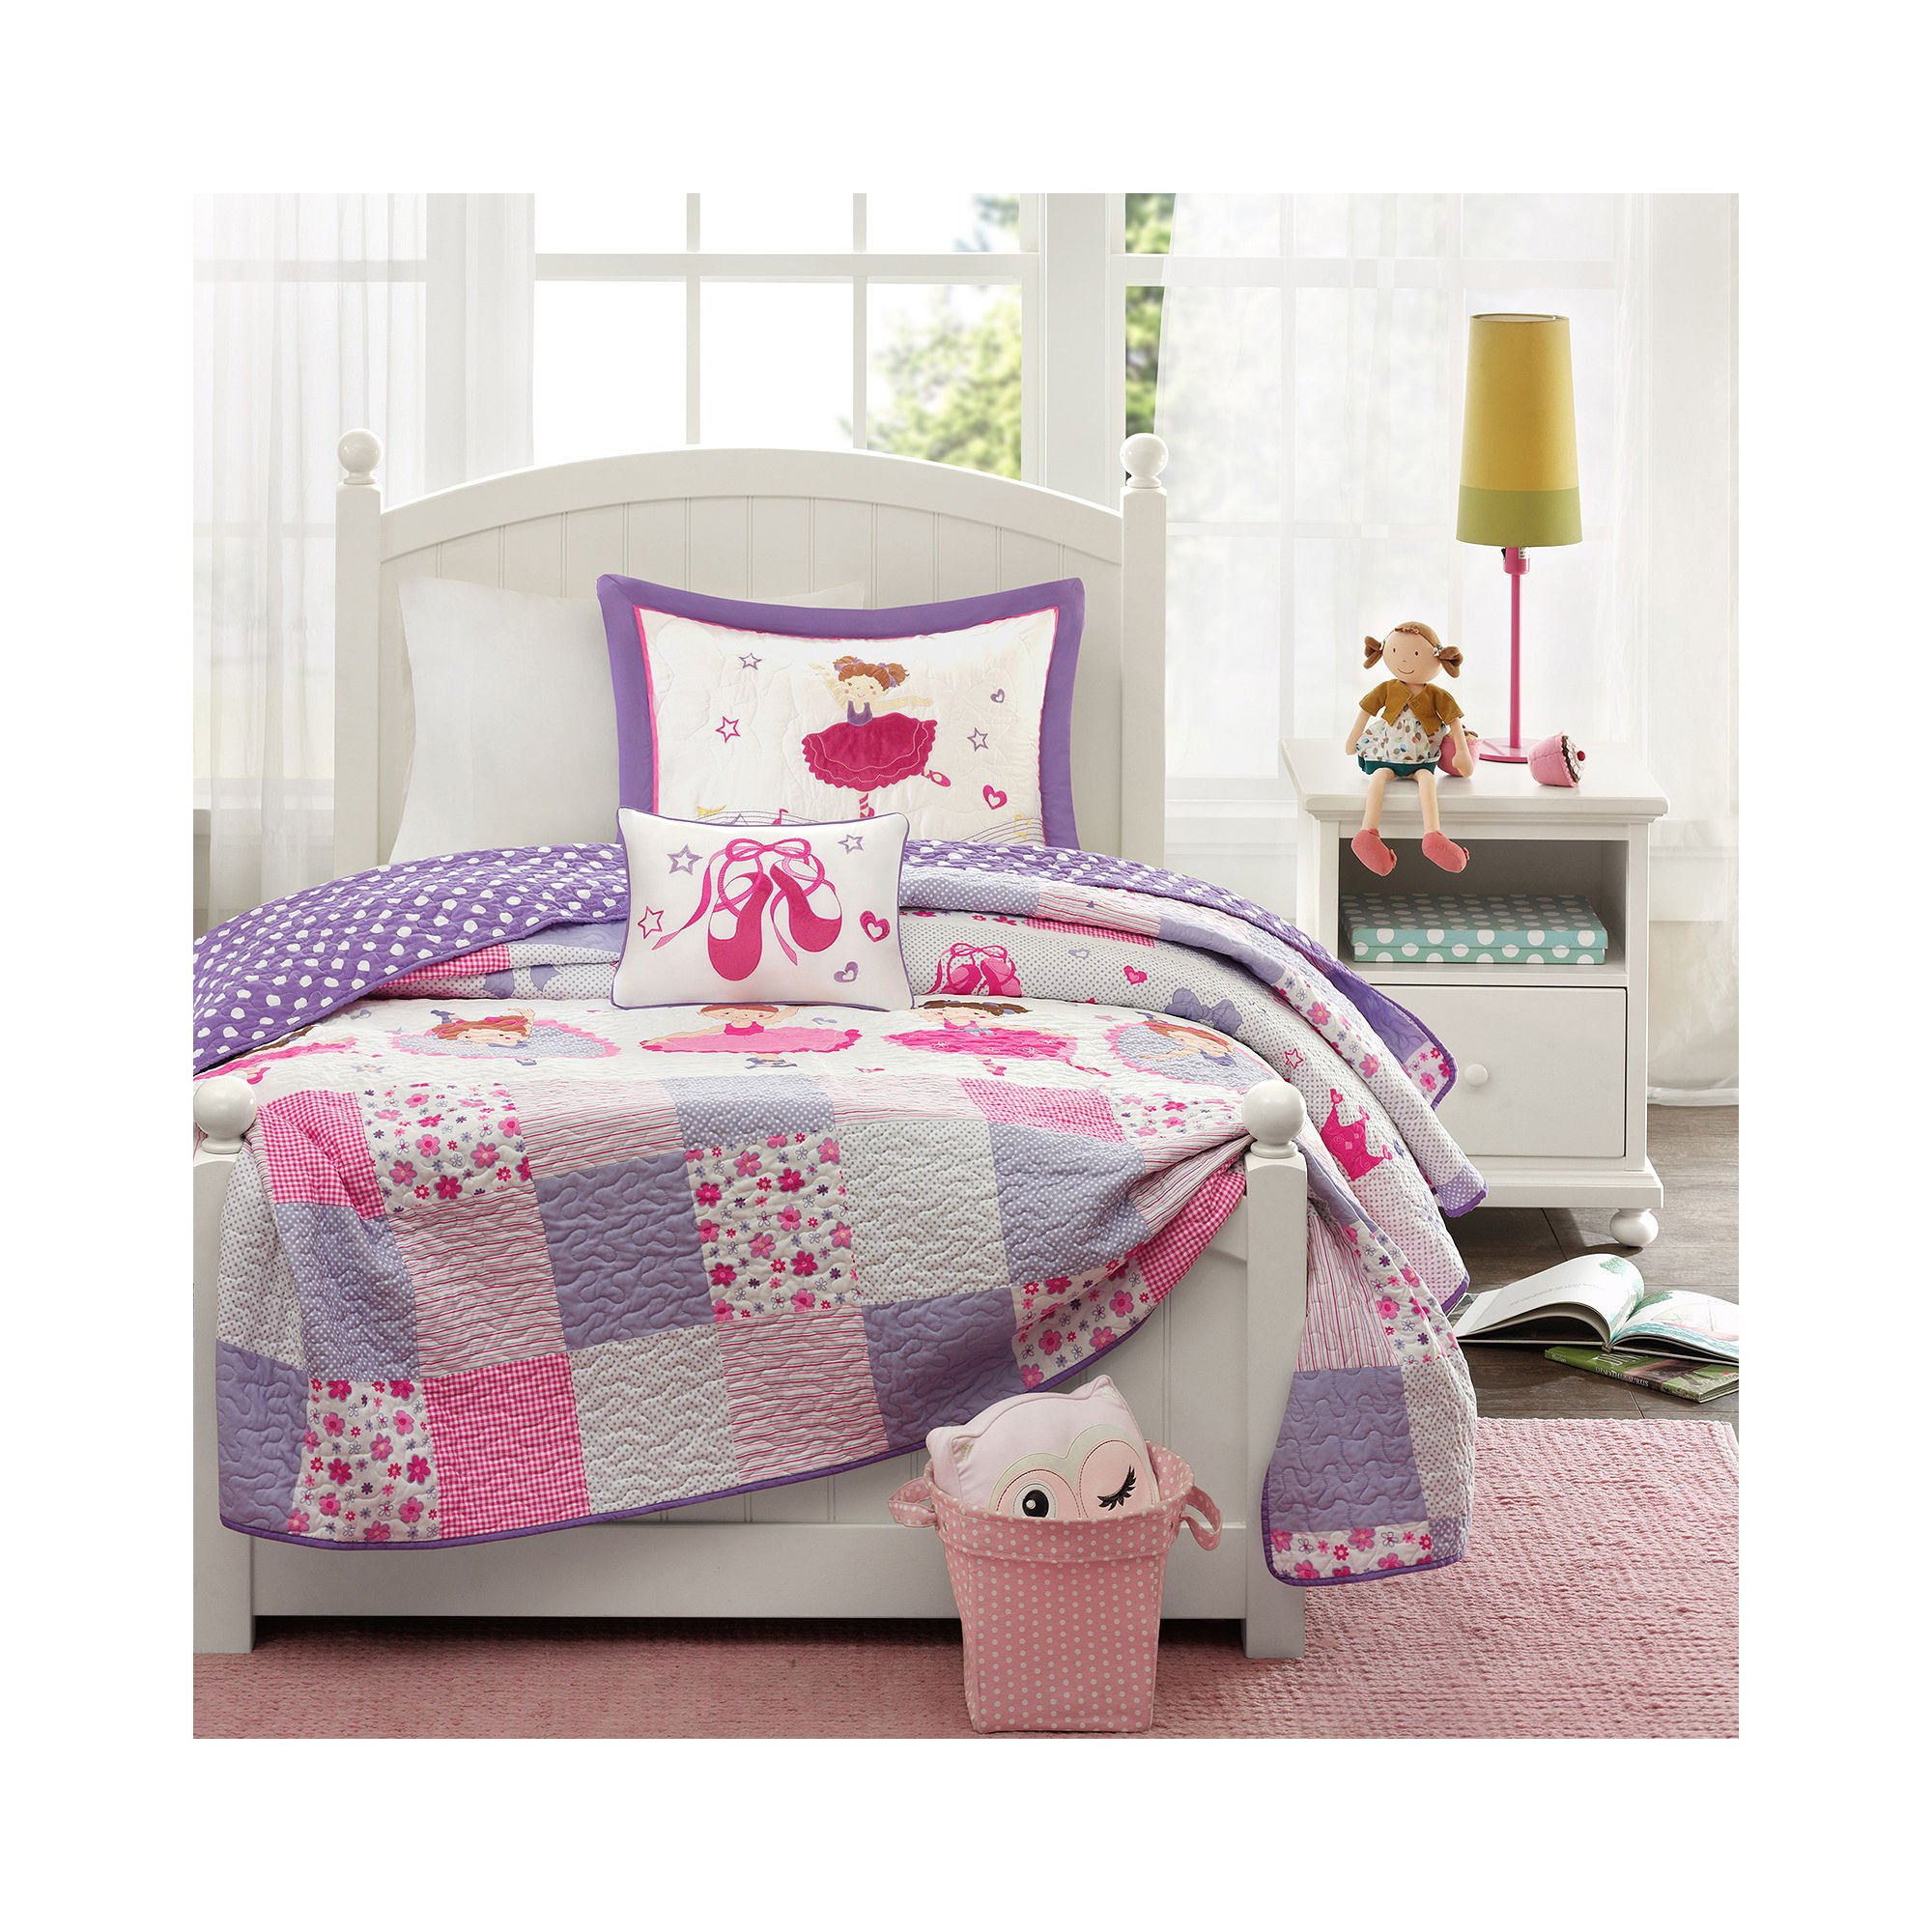 throughout for cover duvet tags your twin girls rare concept interesting house sets teen bedding purple bedroom